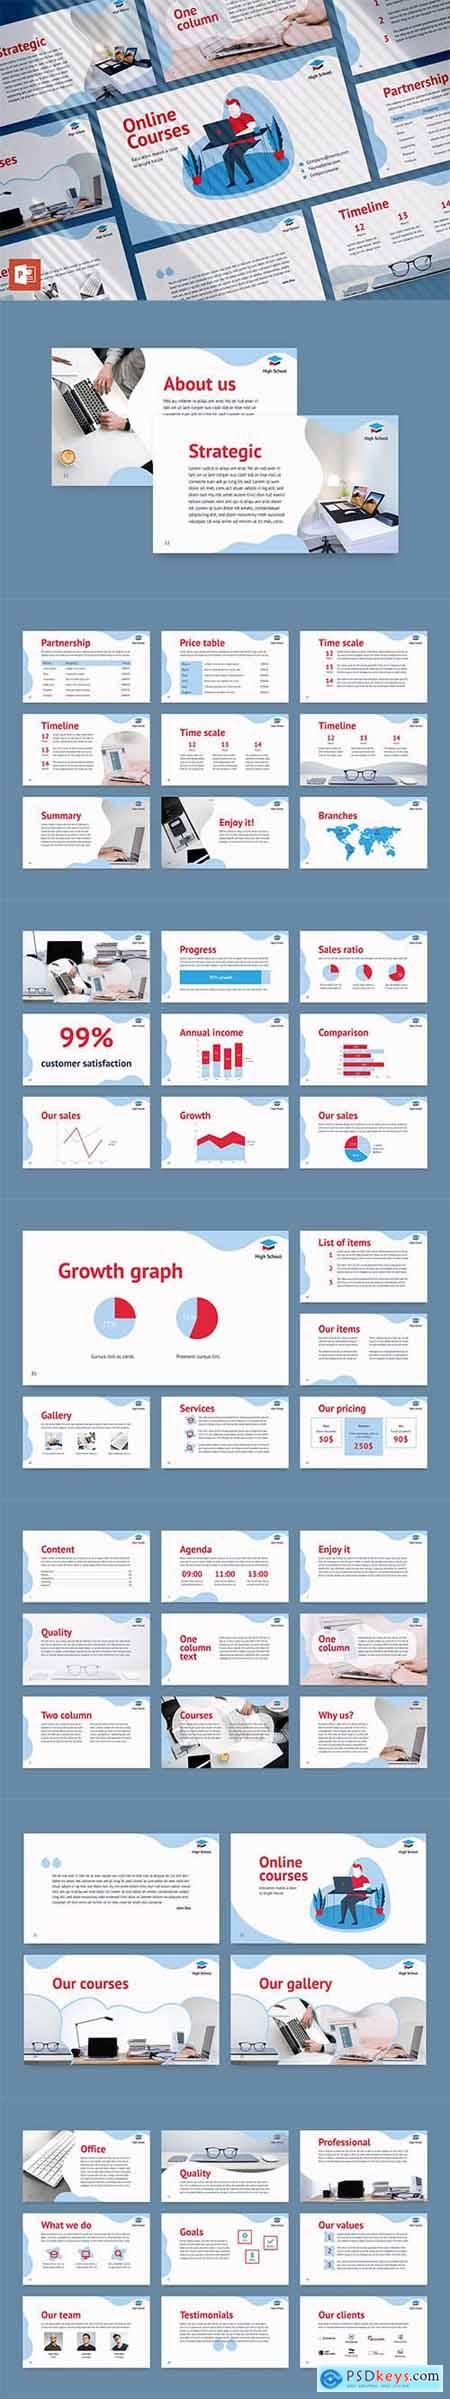 Online Courses PowerPoint Presentation Template